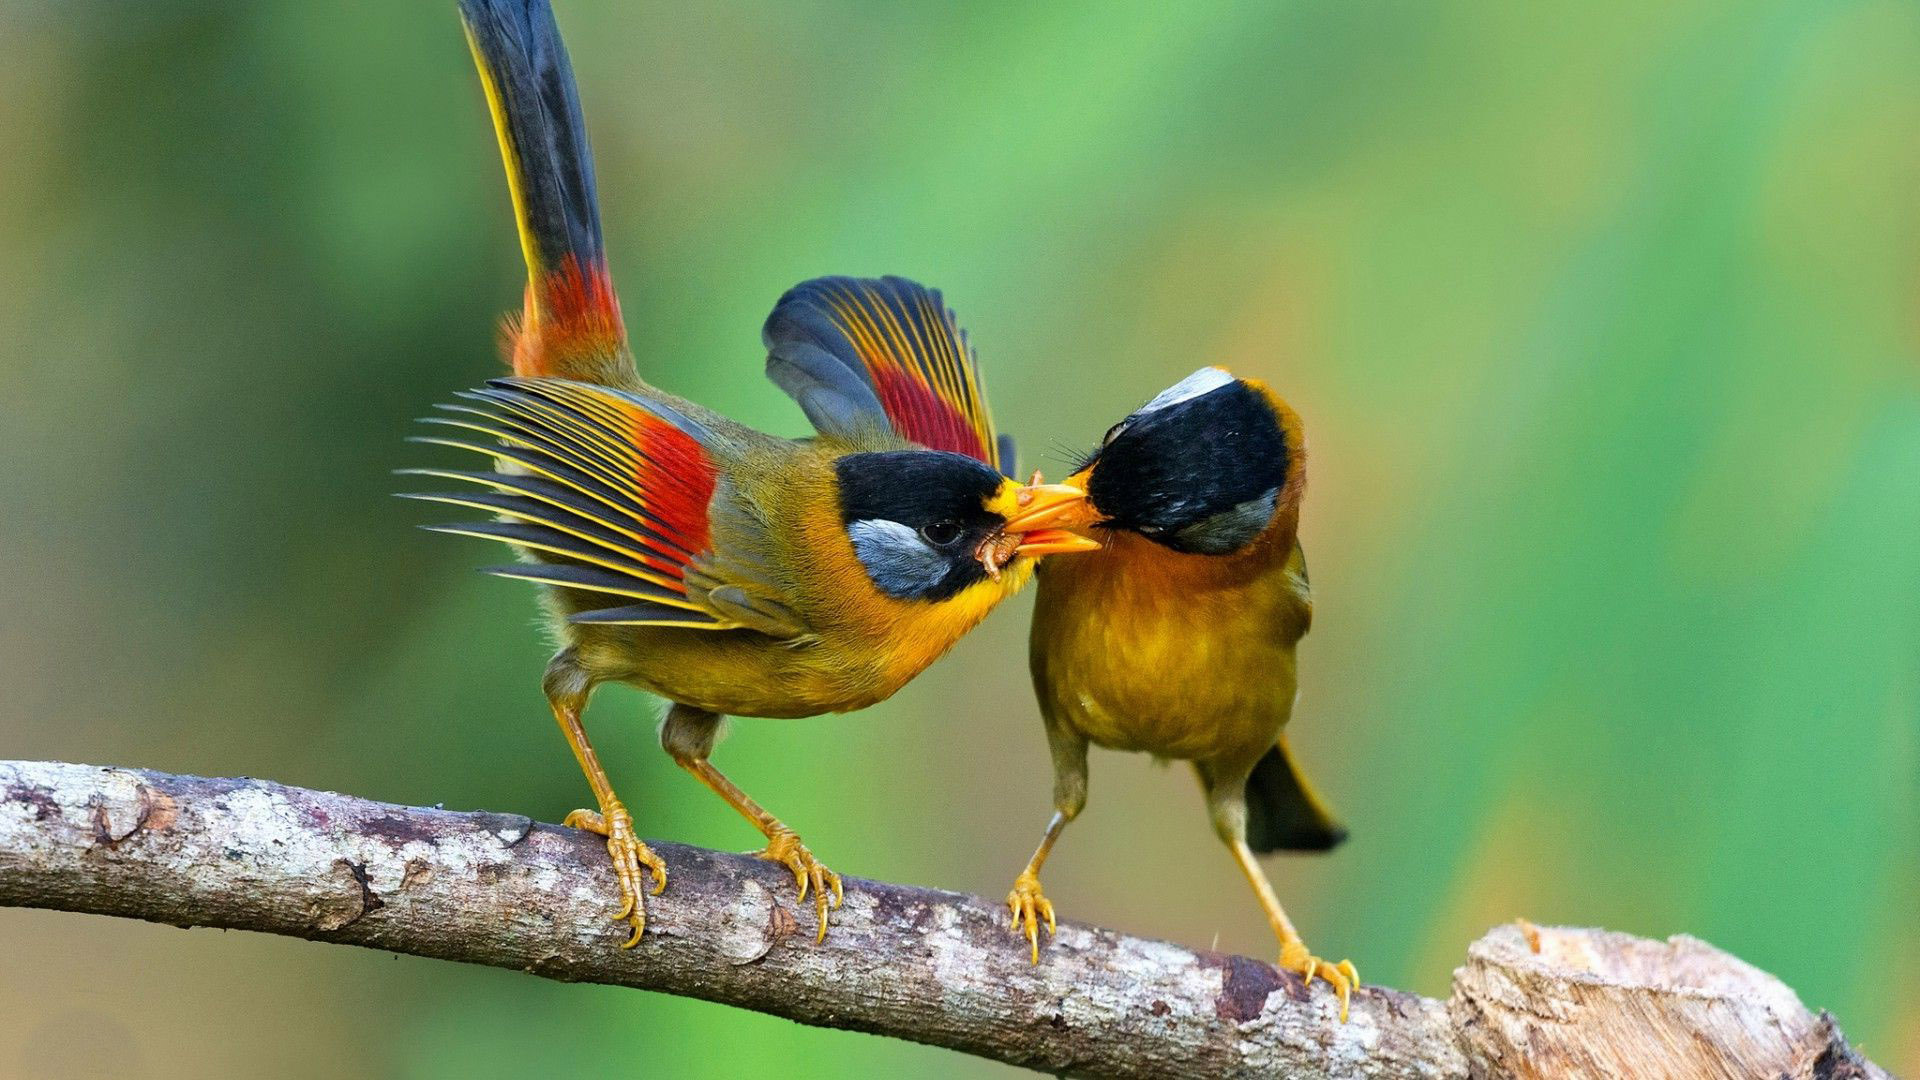 Bird Of Paradise Wallpaper Iphone 5 Two Birds Fighting Over A Worm Full Hd Wallpaper And